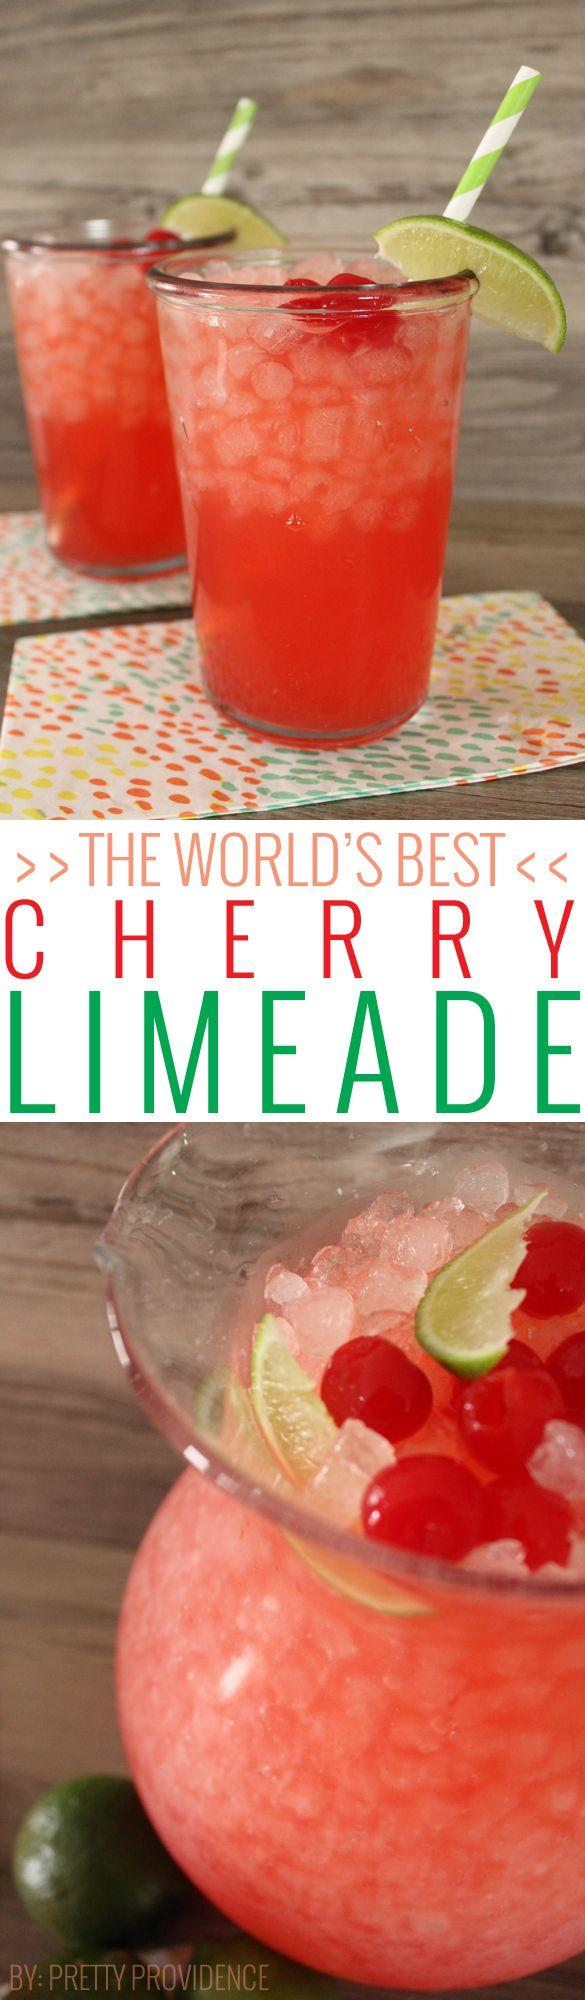 Boda - The World's Best Cherry Limeade